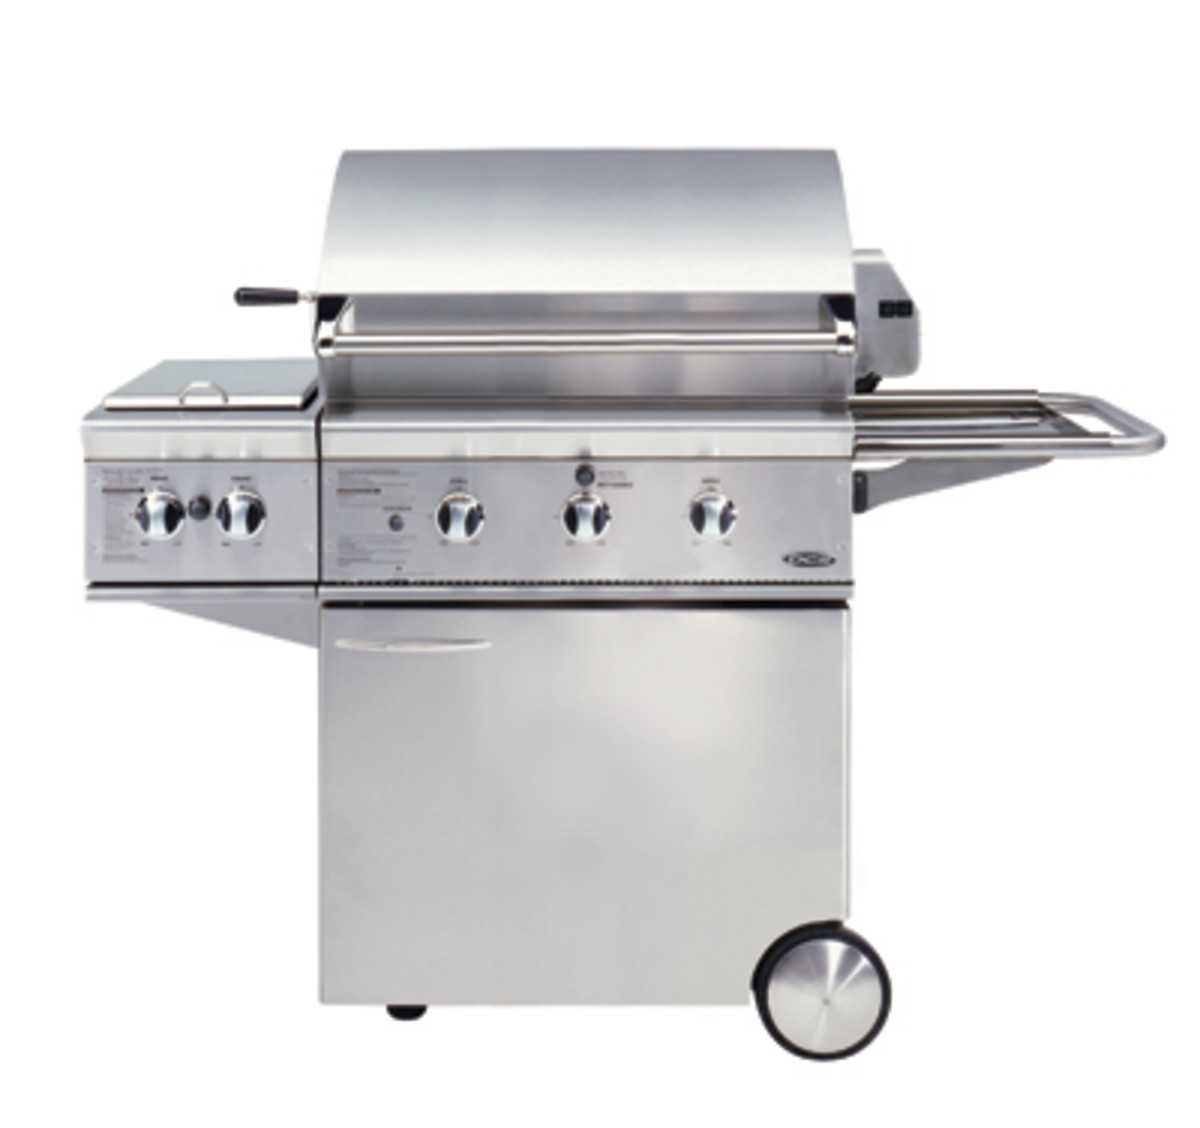 """The DCS 30 models were always a little different from the rest of the DCS models.  Here a DCS 30"""" gas bbq grill on a portable cart is shown with a double side burner that replaced one side shelf."""